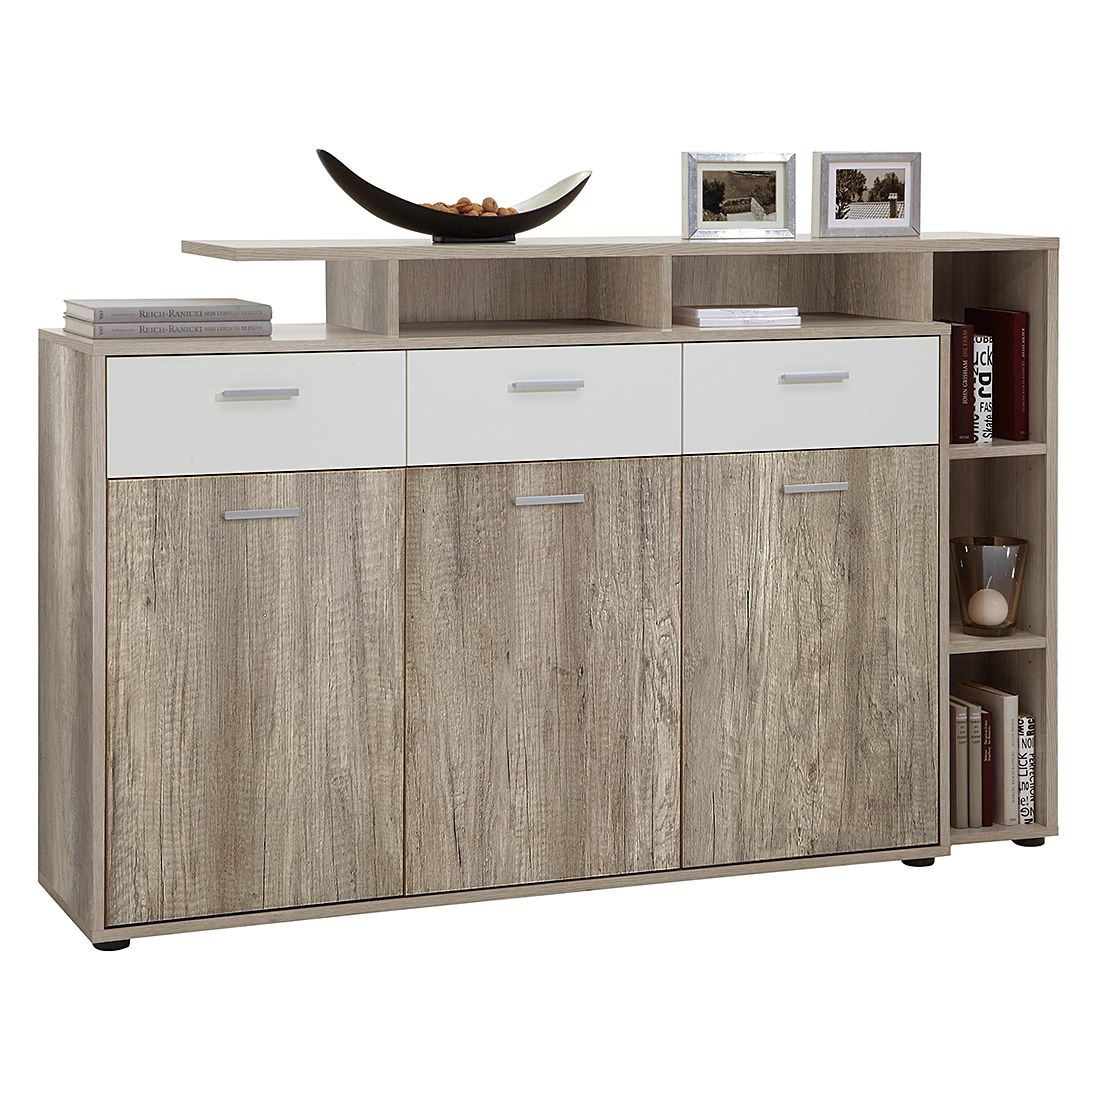 sideboard m ller eiche dekor foliert beschichtet mooved g nstig kaufen. Black Bedroom Furniture Sets. Home Design Ideas